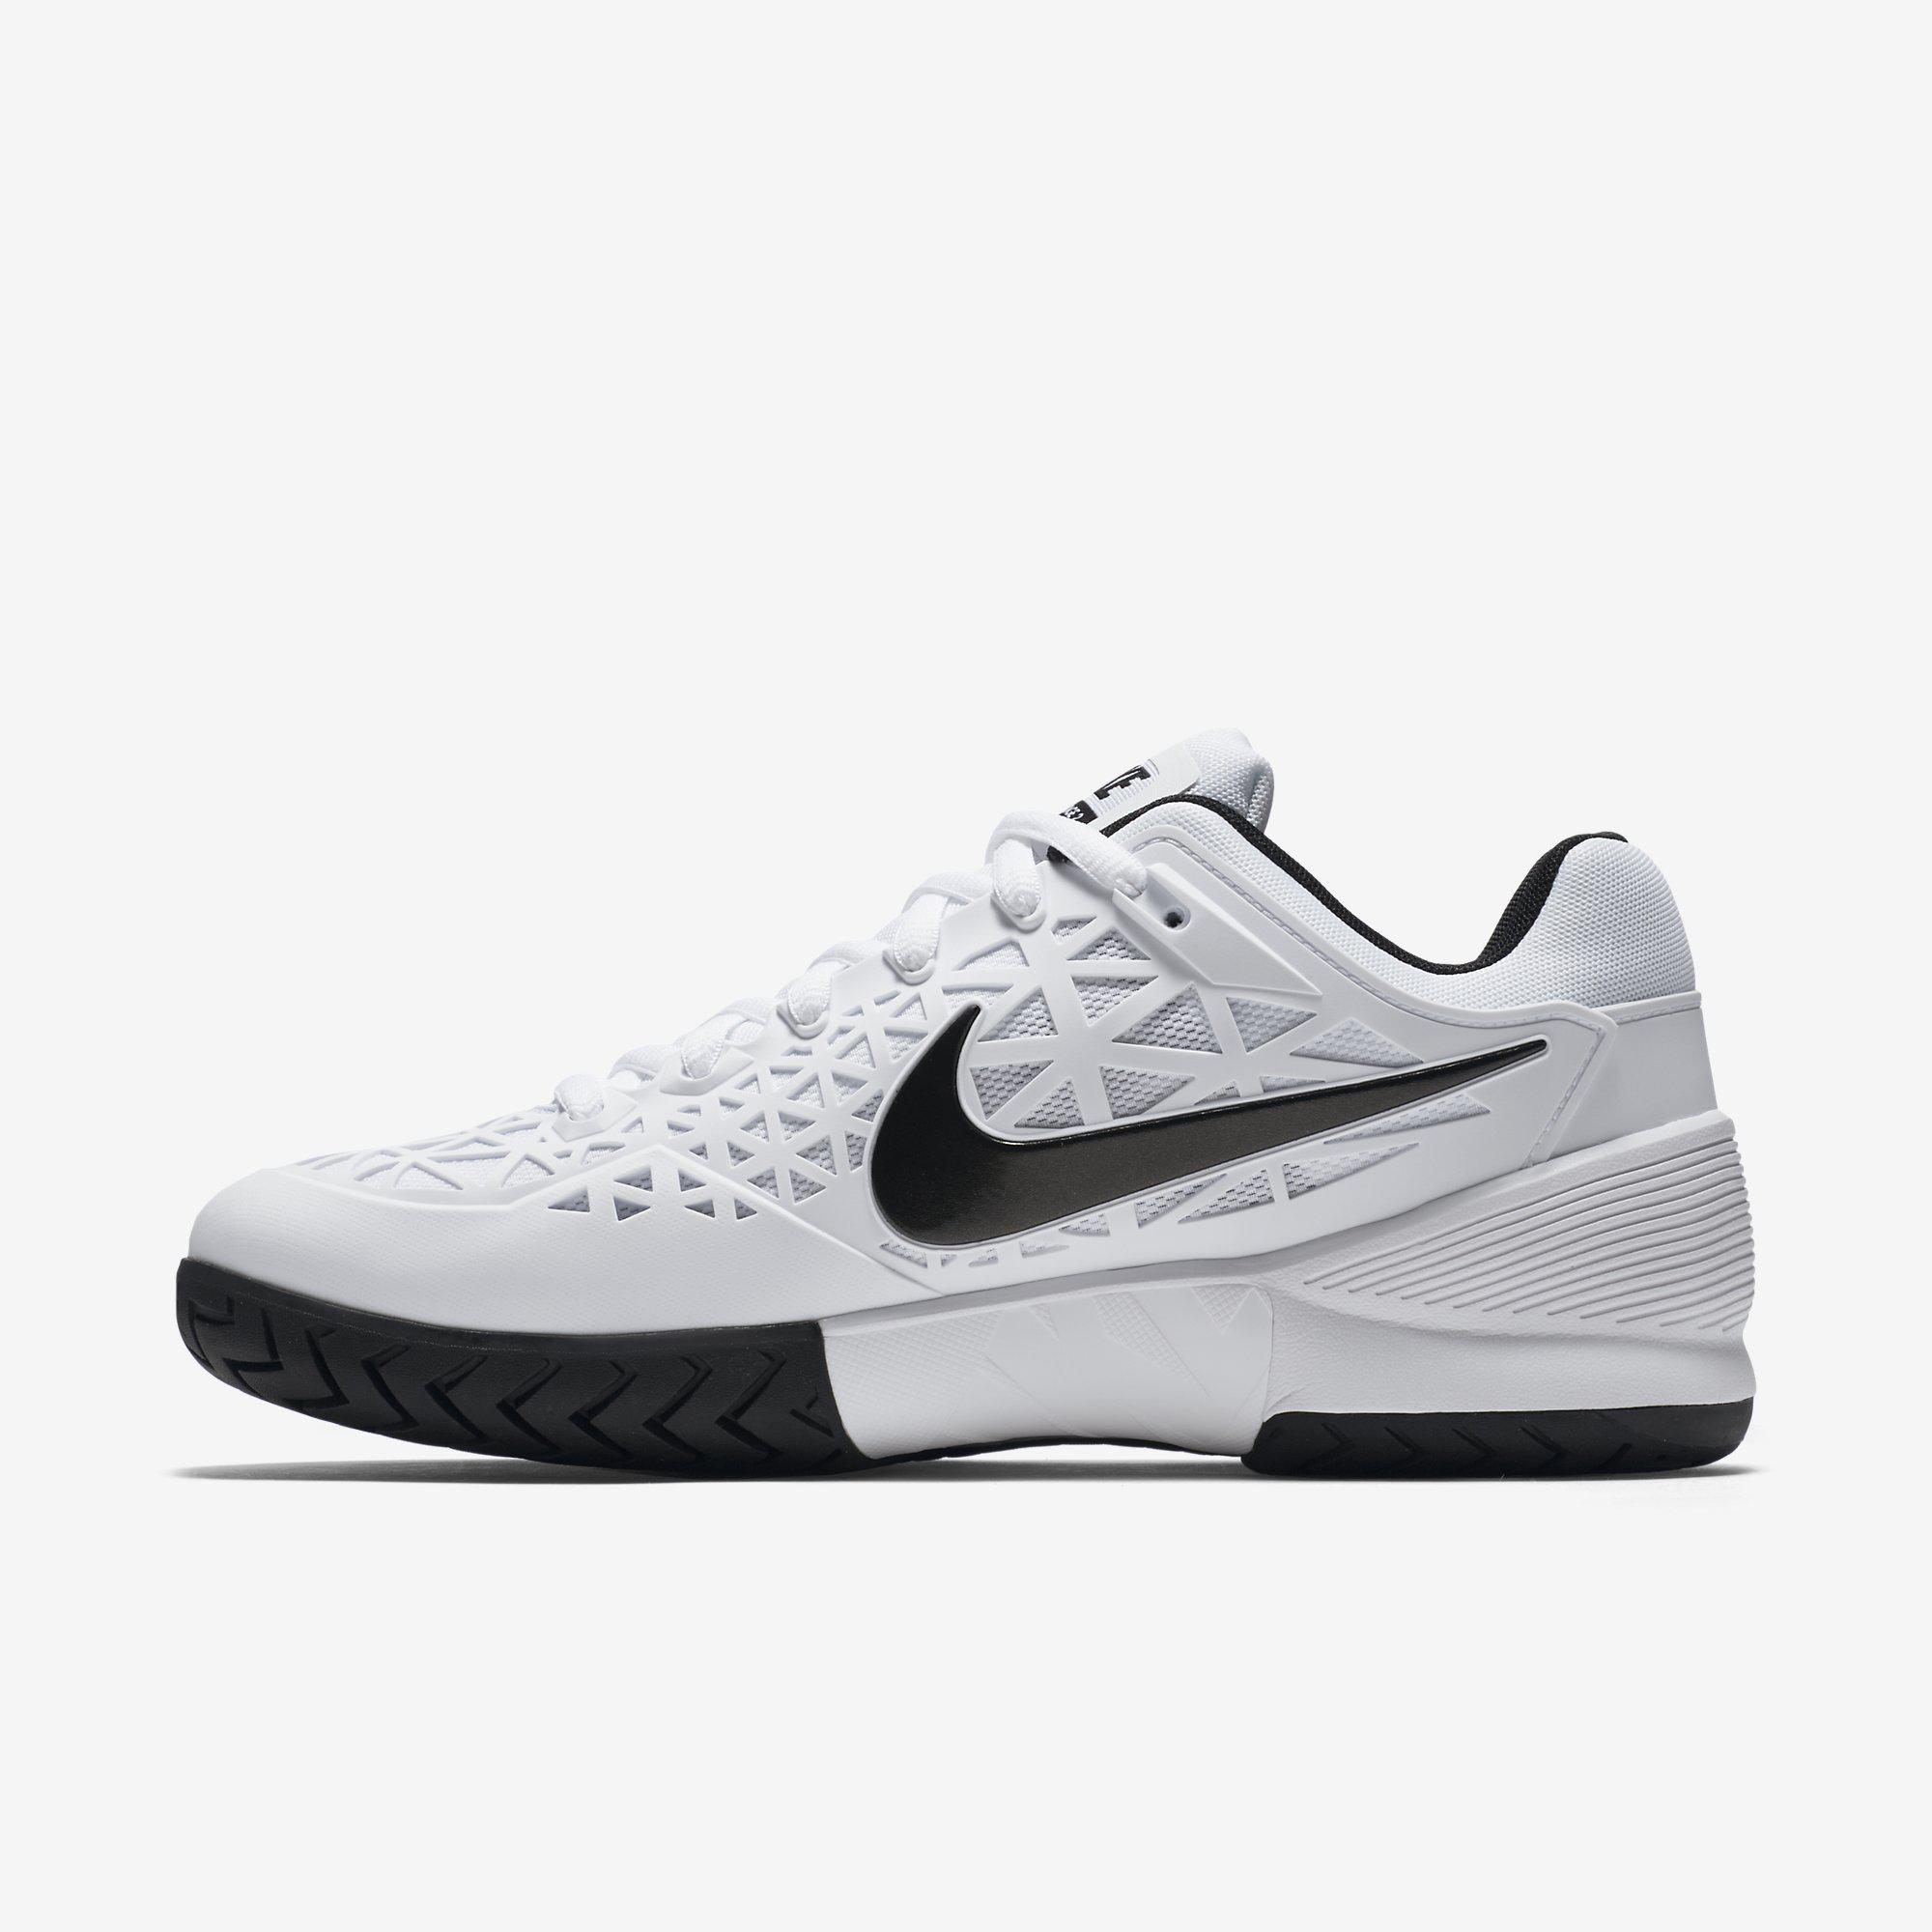 White Mens Nike Tennis Shoes